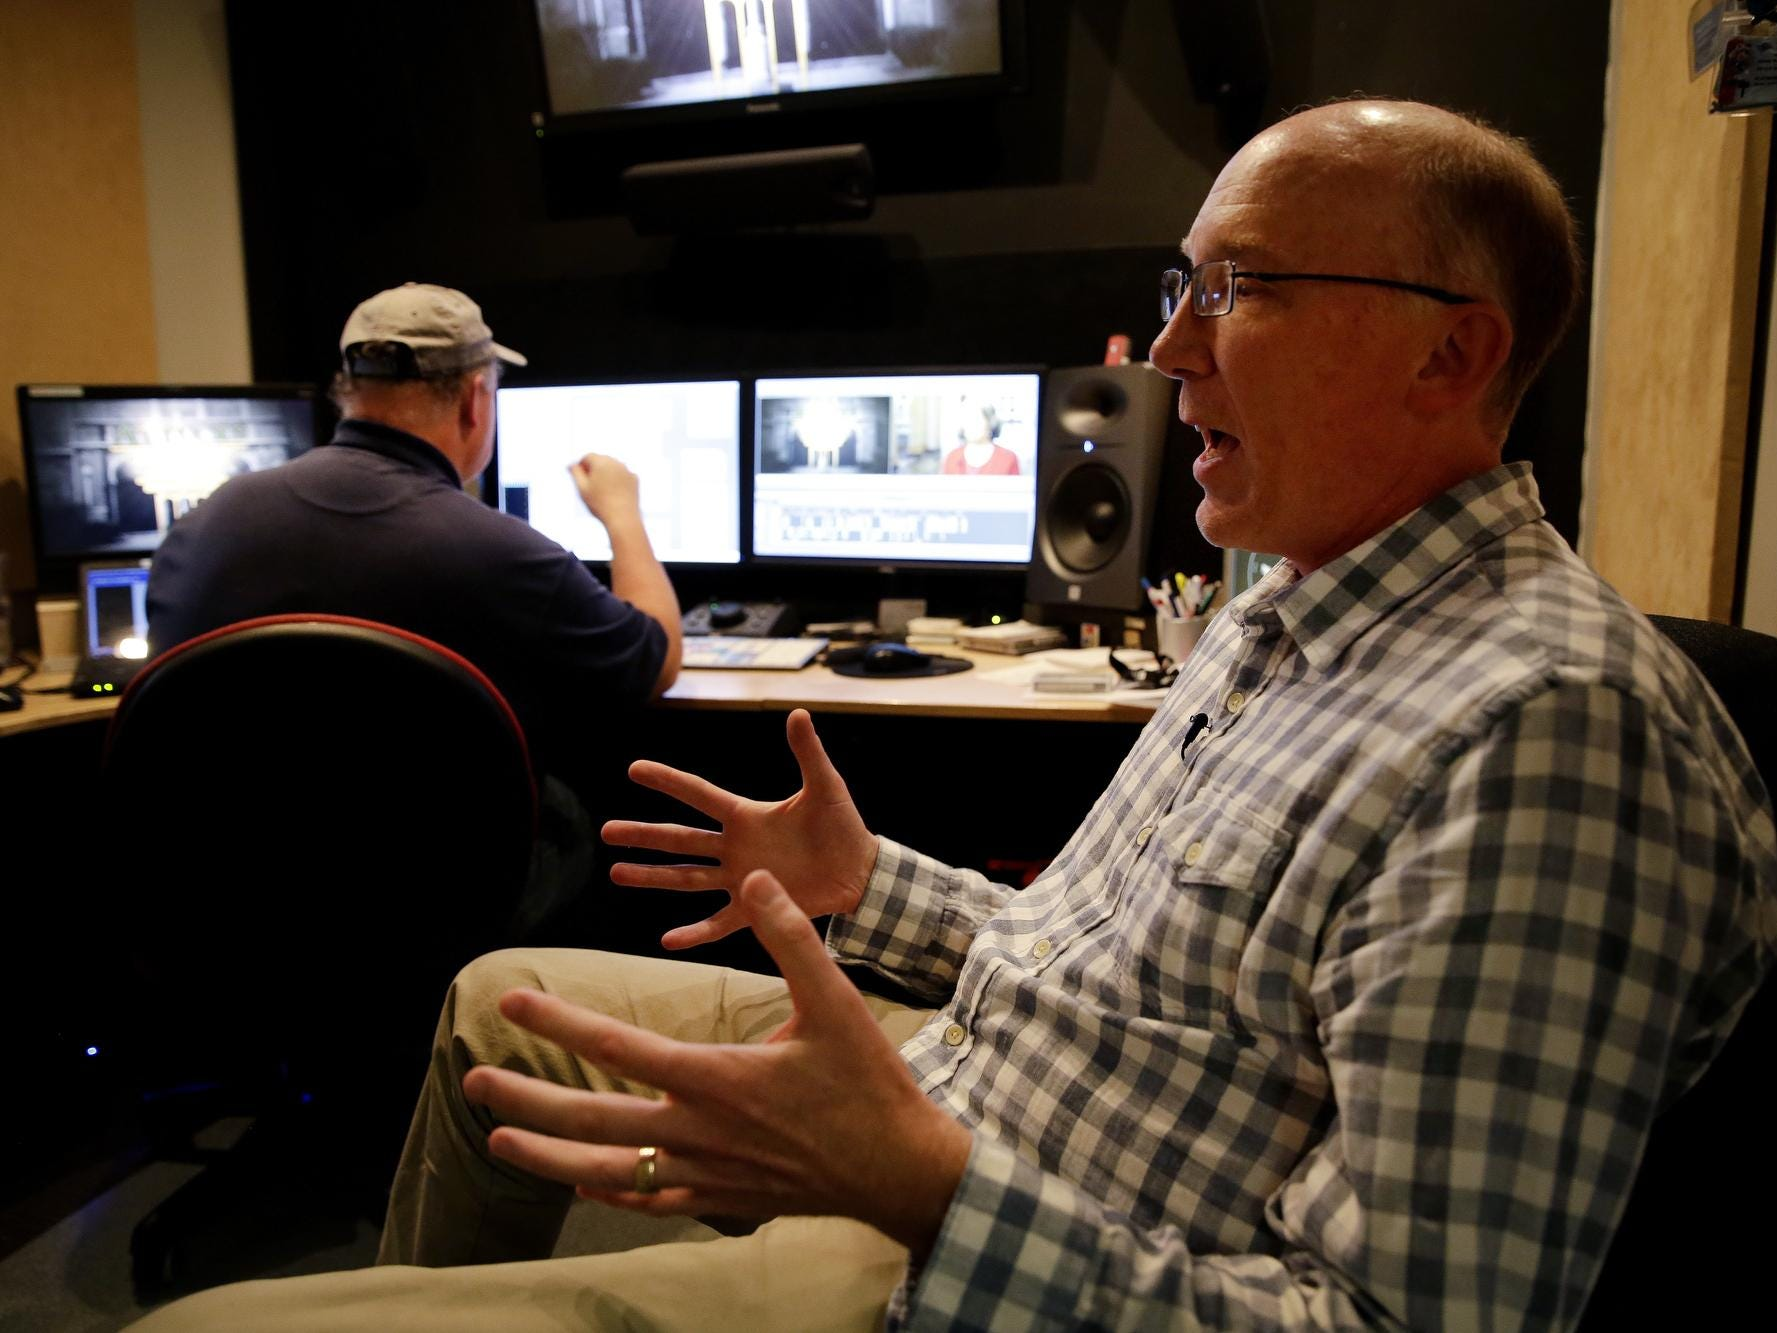 Ted Green, who is writing and producing a documentary about the historic Crispus Attucks High School, talks about the project inside a production studio at WYFI alongside editor Pete Saetre on April 22, 2016.